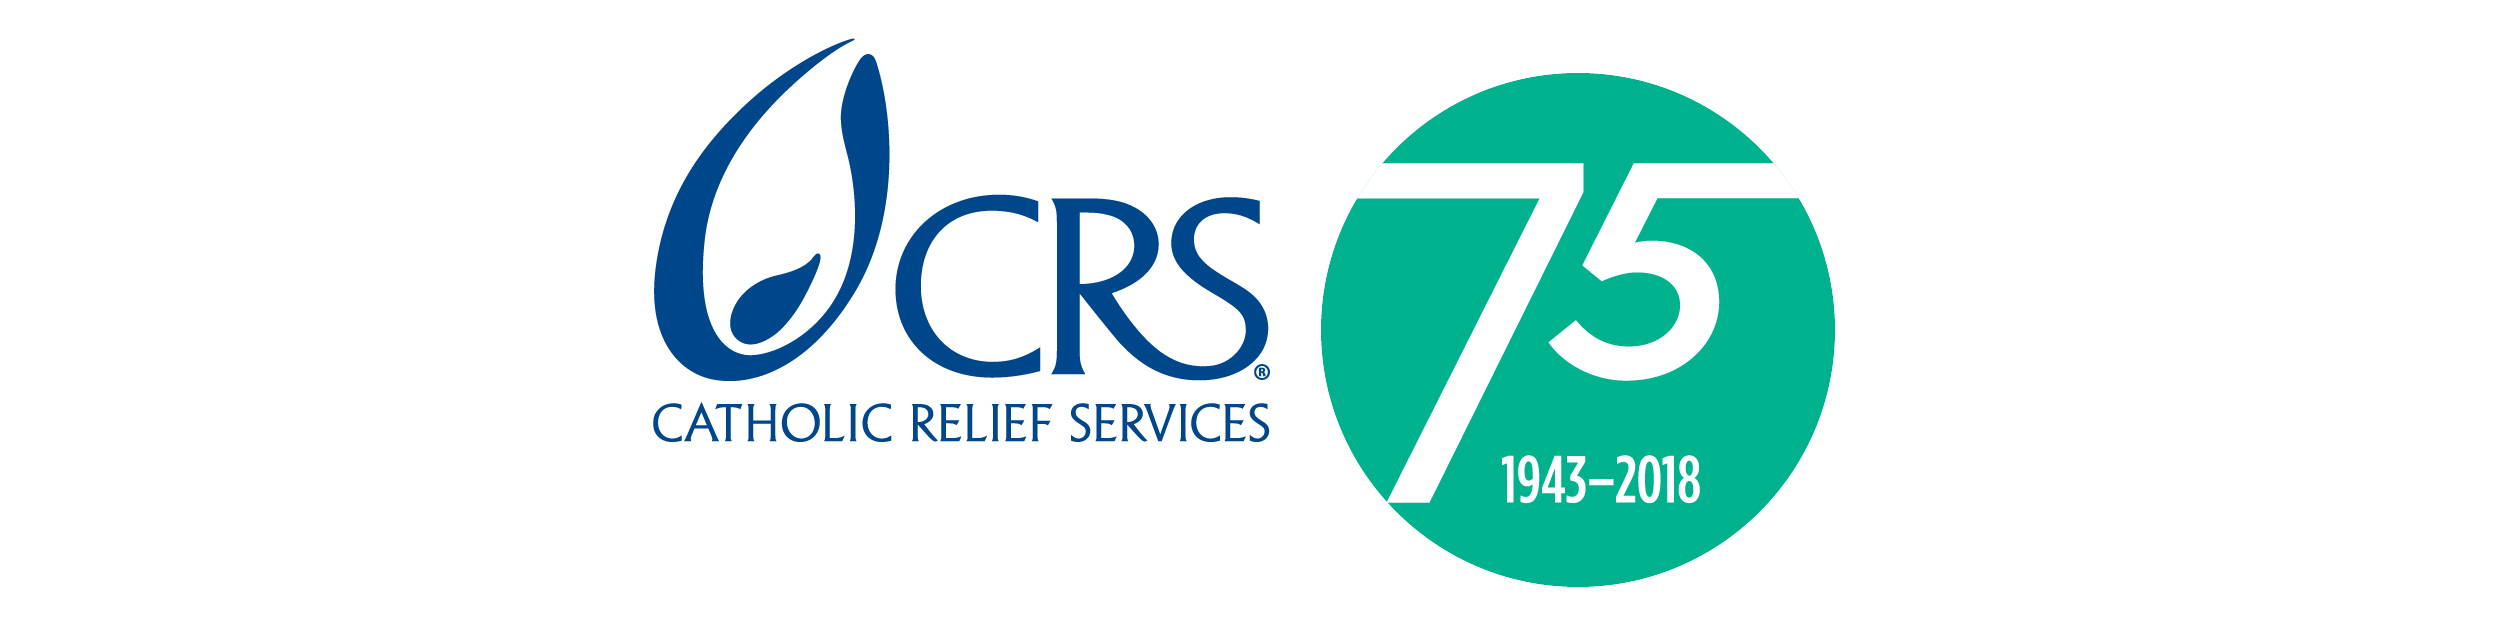 Catholic Relief Services- logo- 75 years